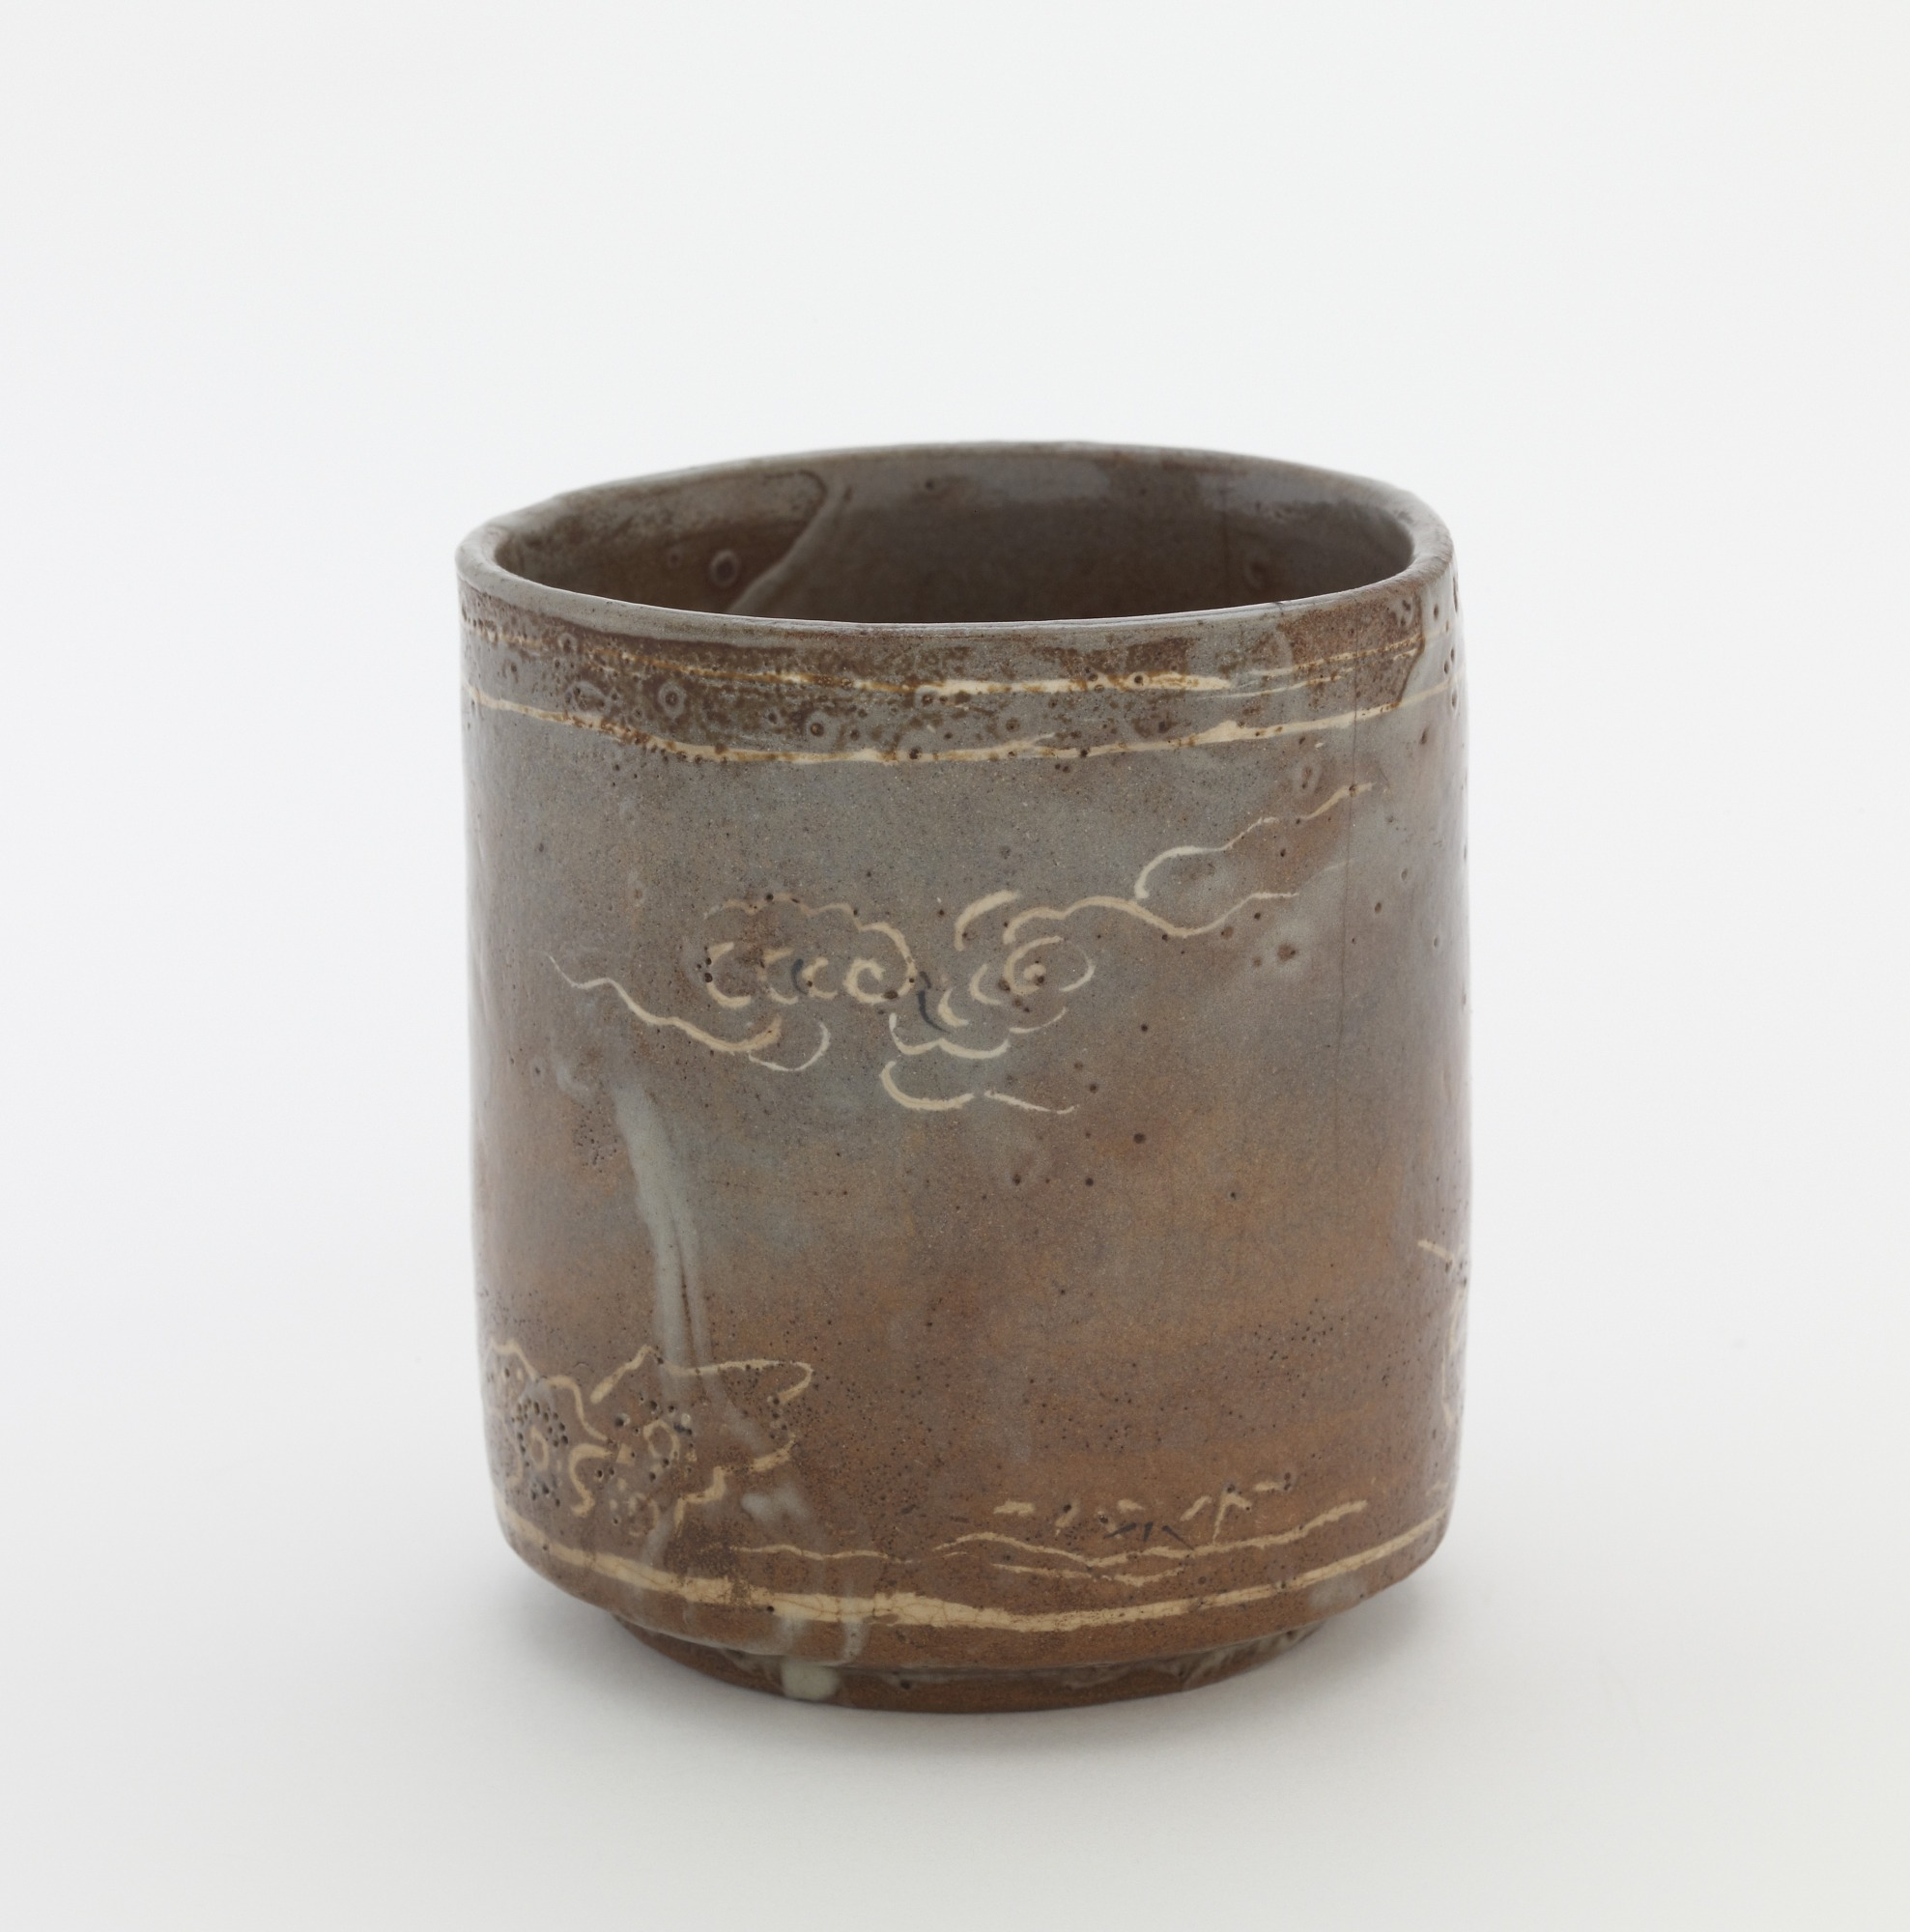 Cylindrical tea bowl with inlaid design of cranes and clouds, profile